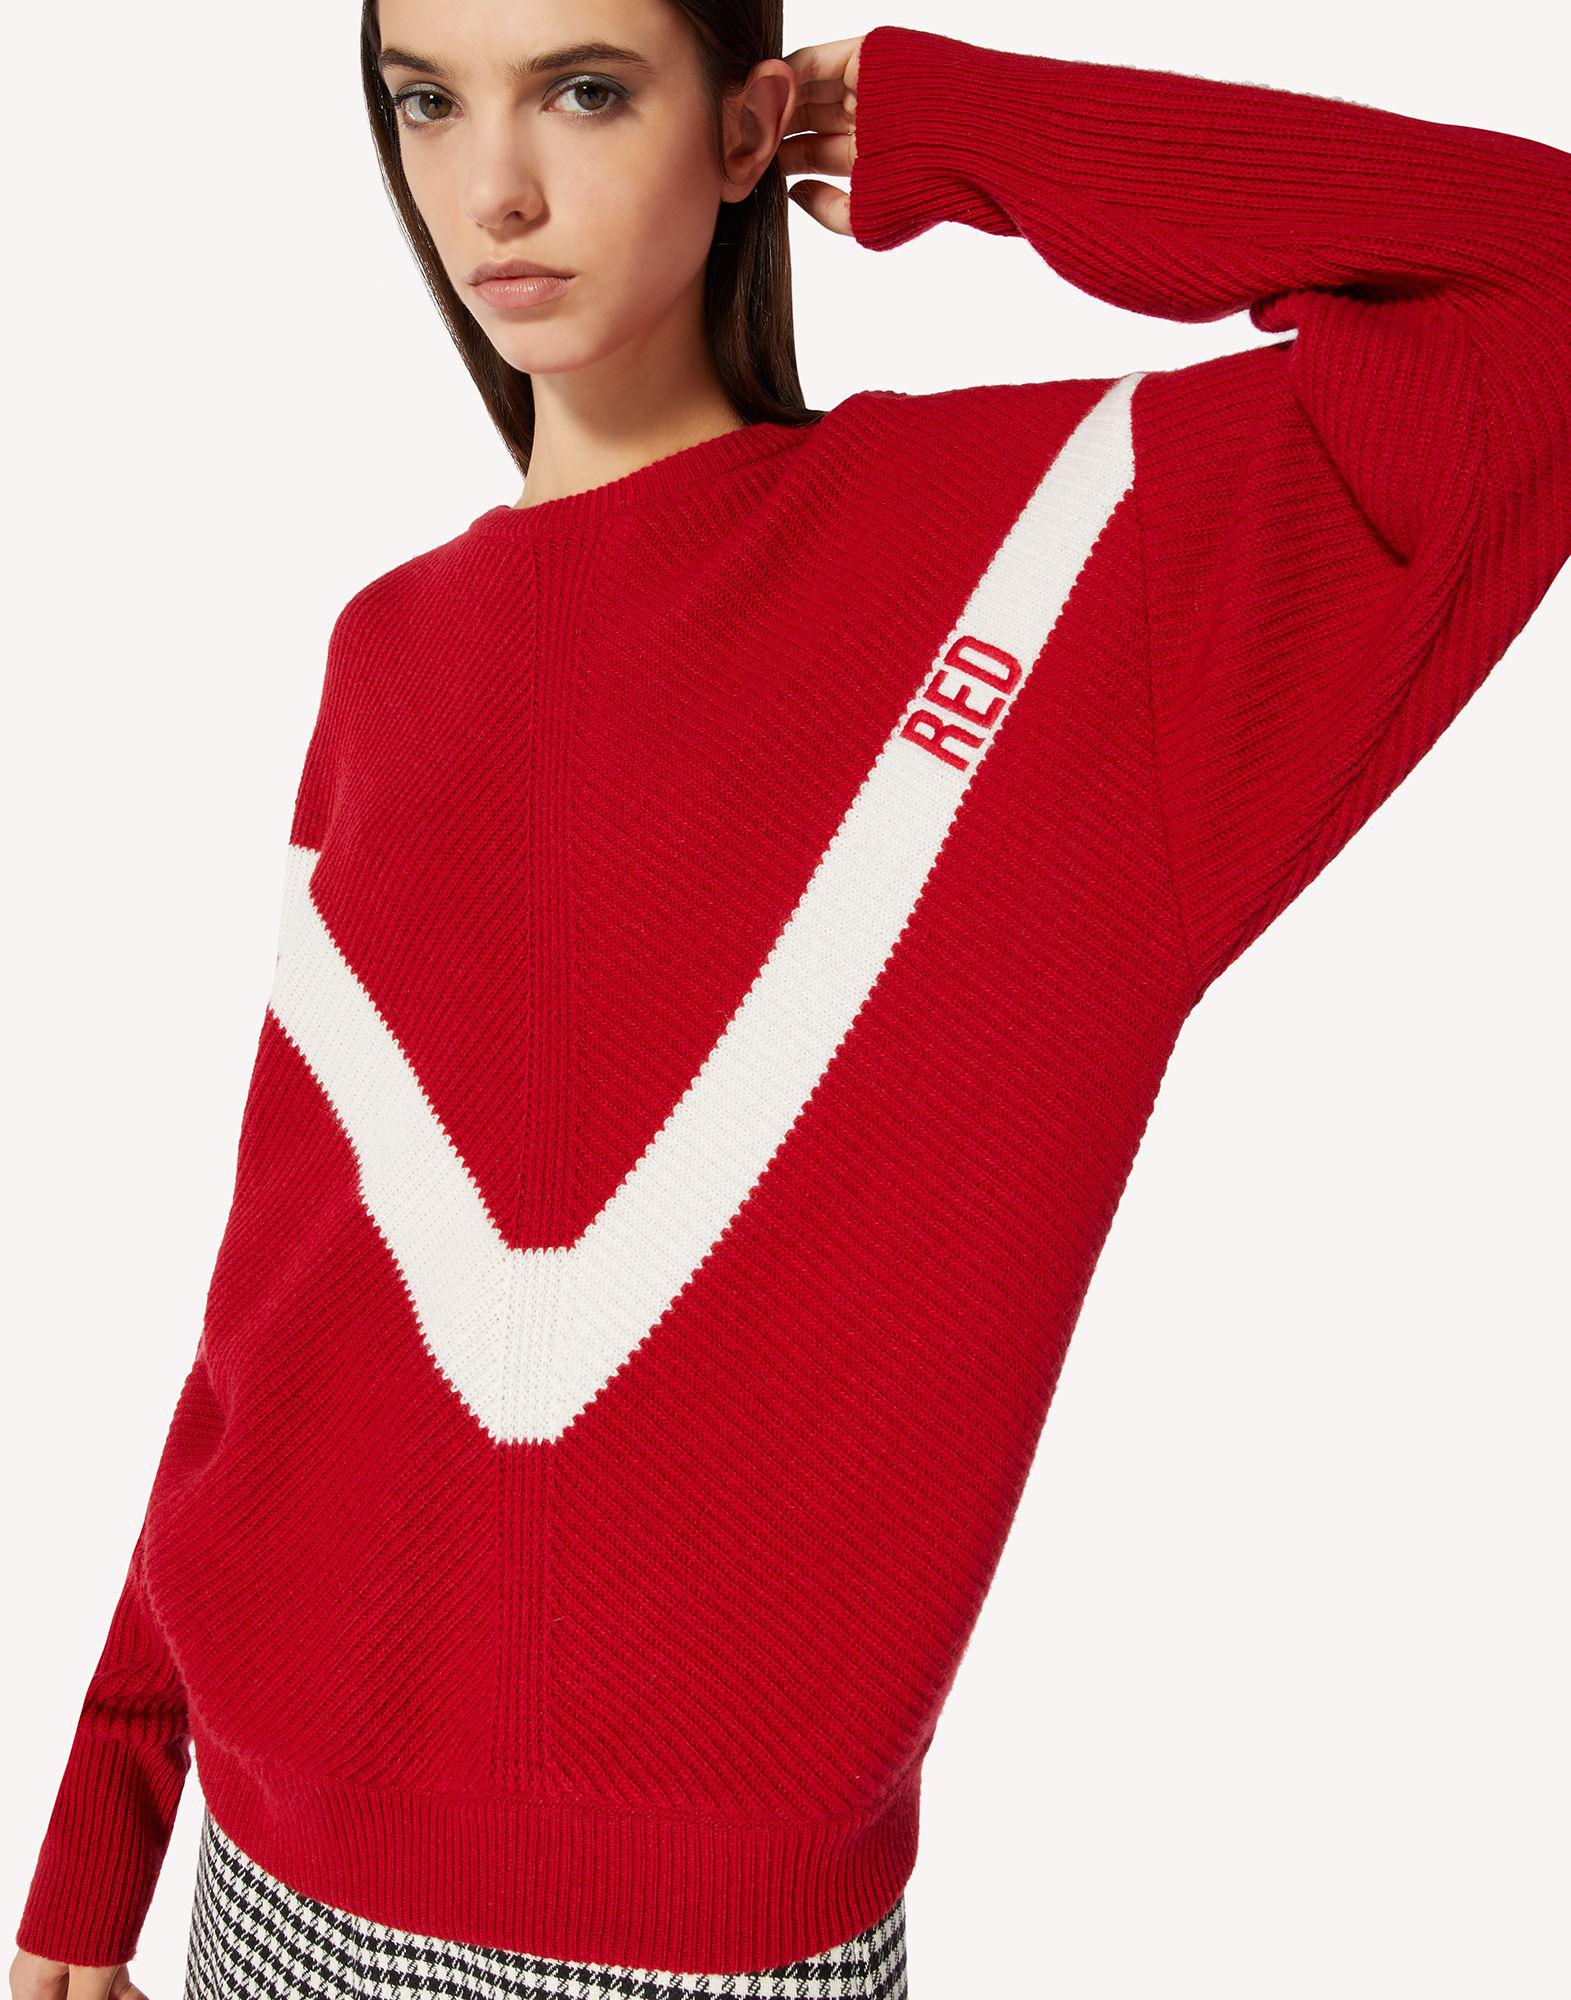 RED EMBROIDERED WOOL-BLEND SWEATER 3